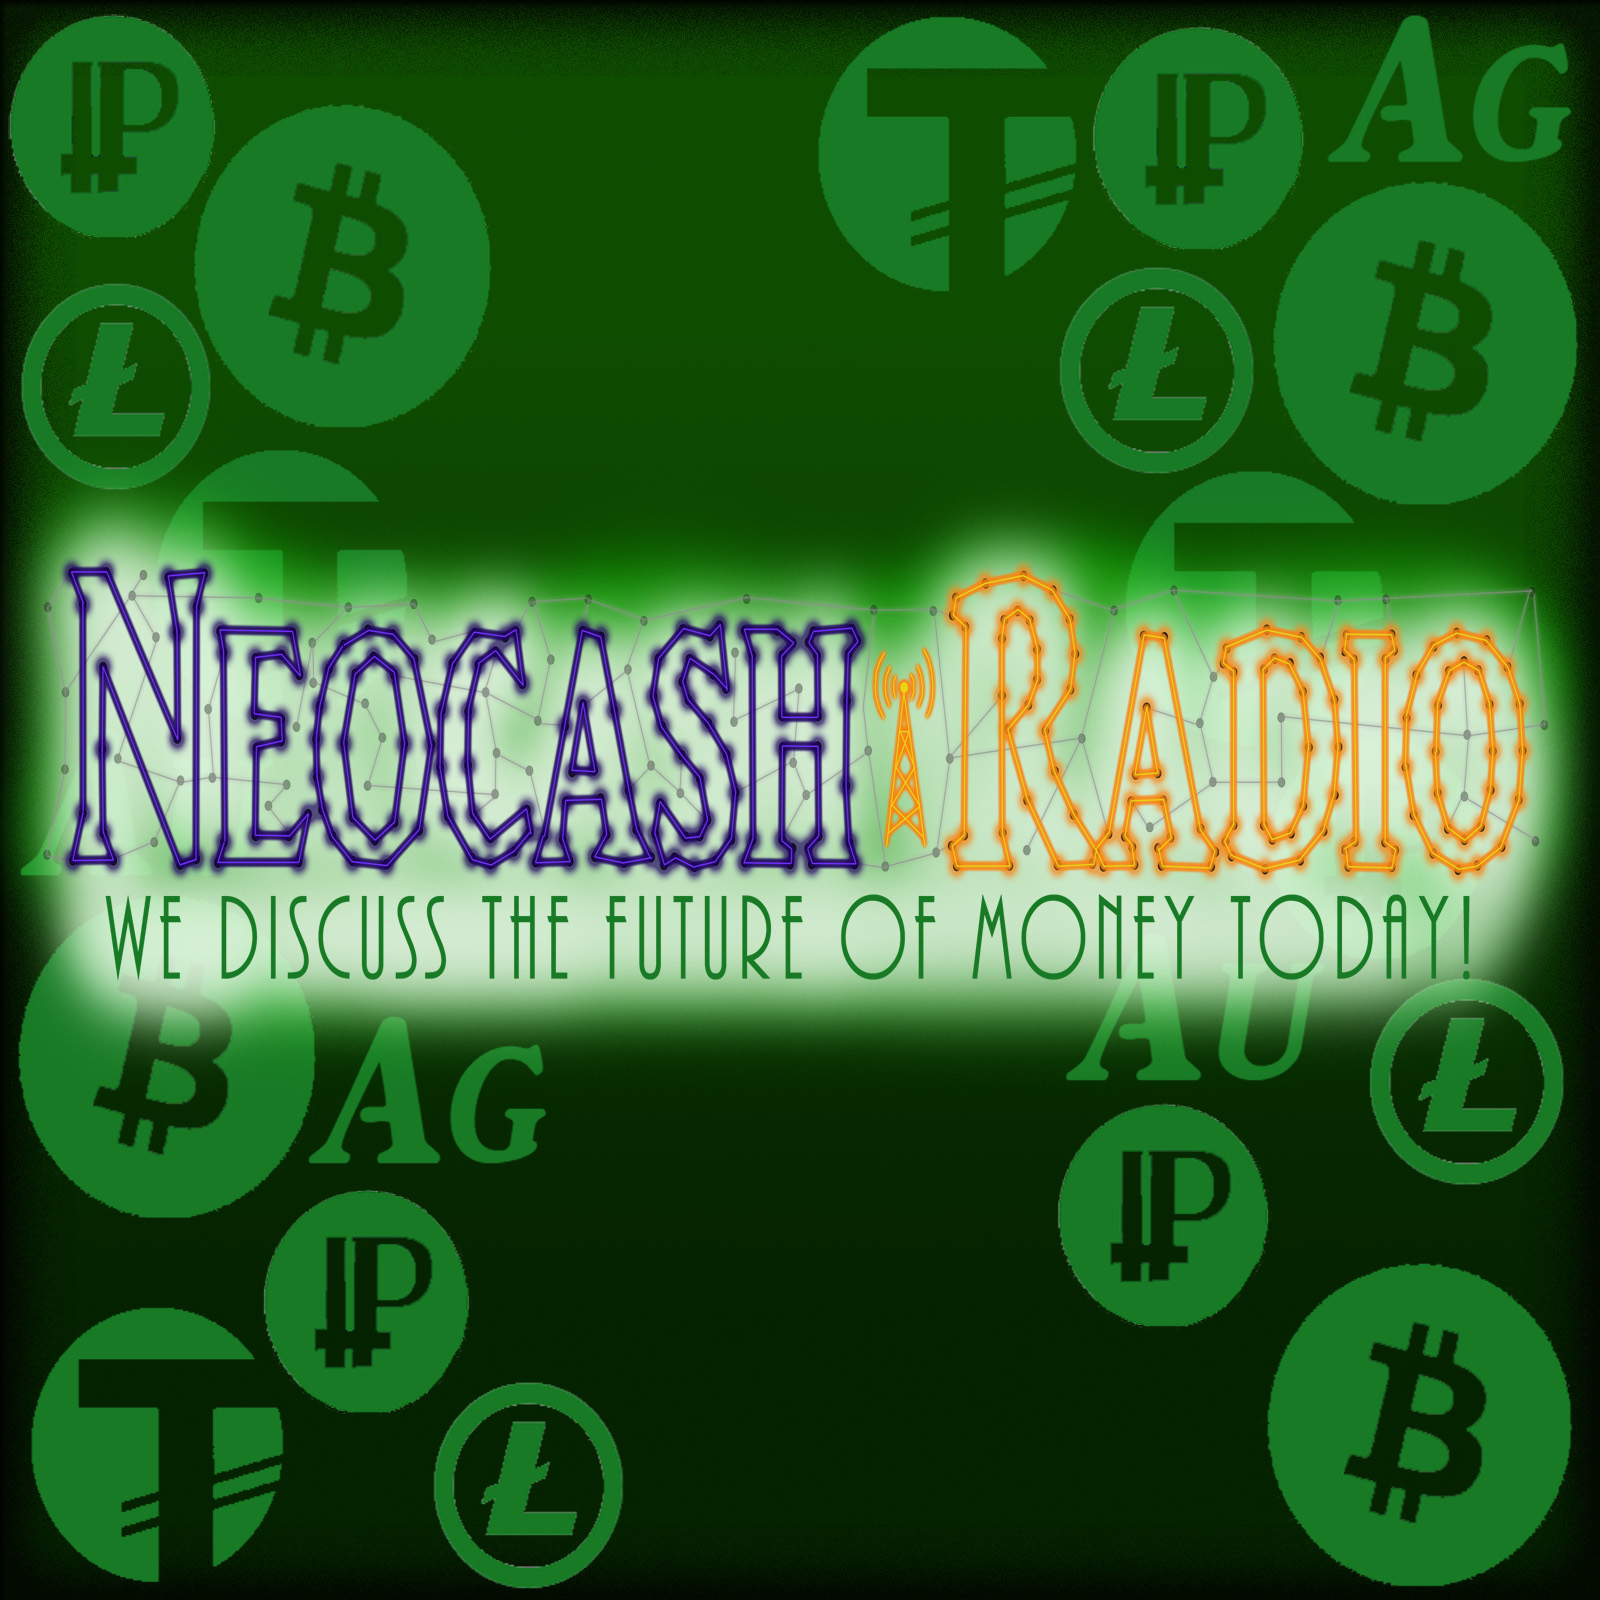 Neocash Radio - Episode 155